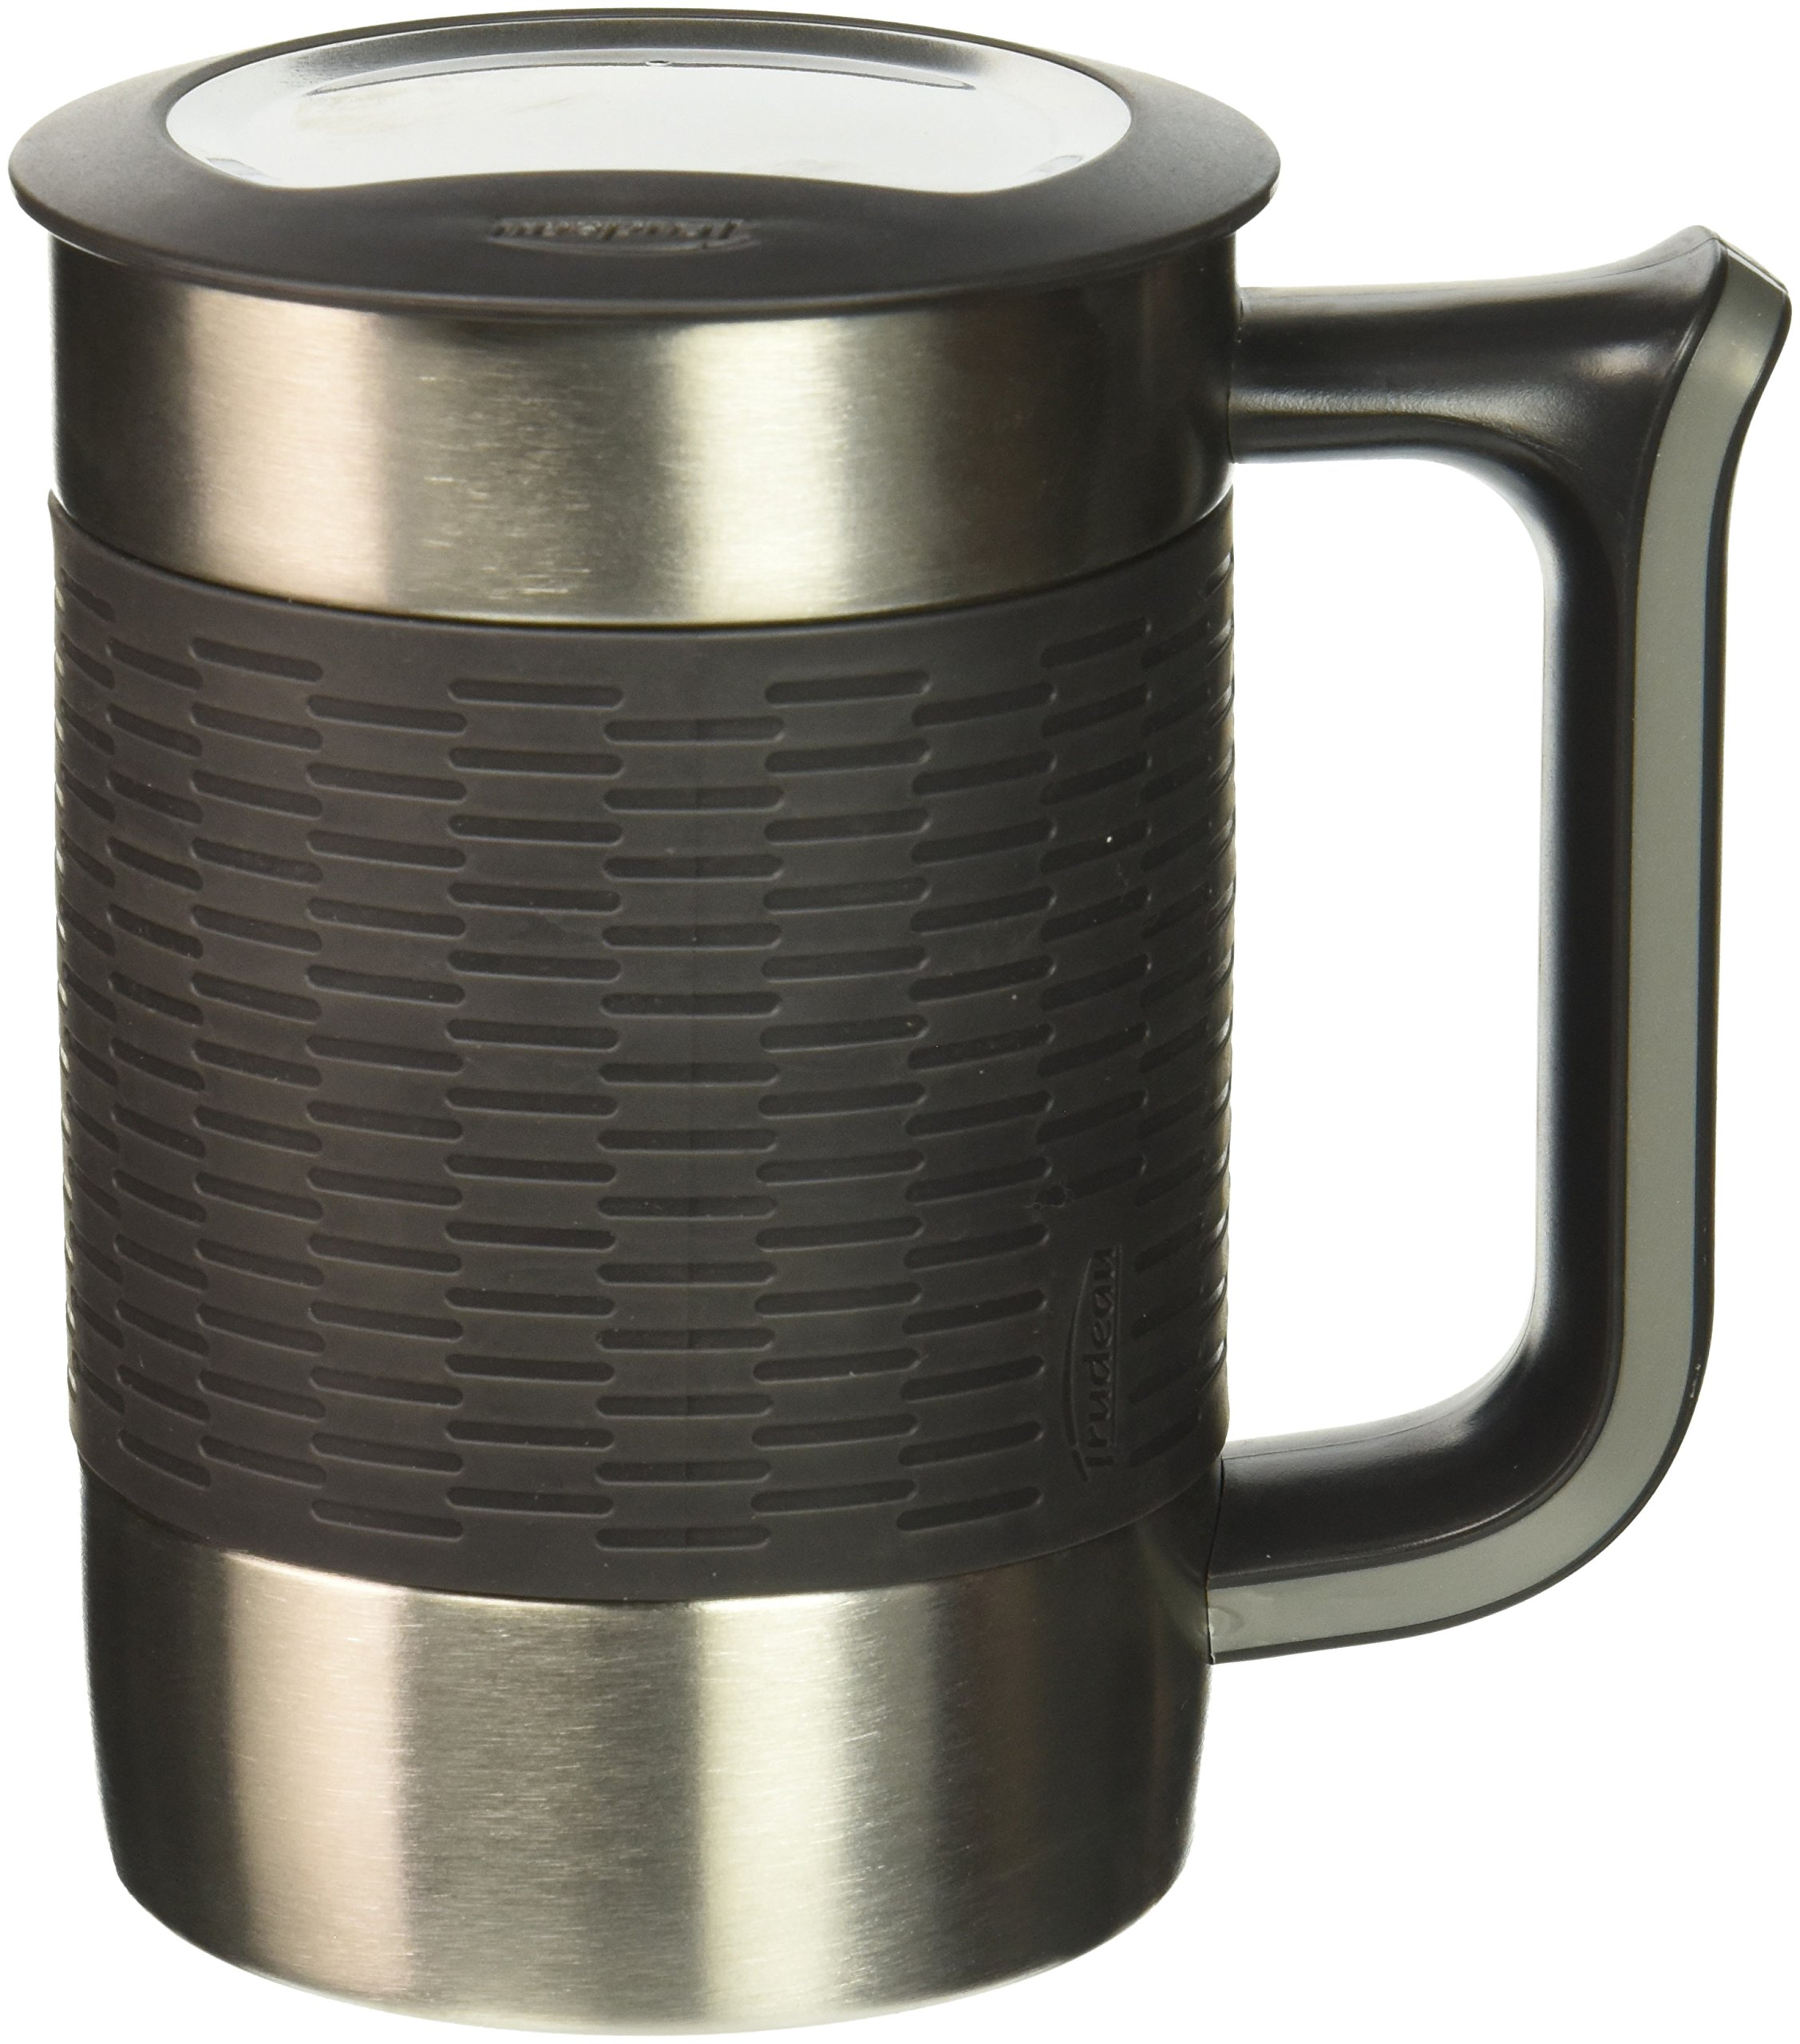 Trudeau Boardroom II Desk Mug Charcoal, 16 oz, Charcoal/Grey